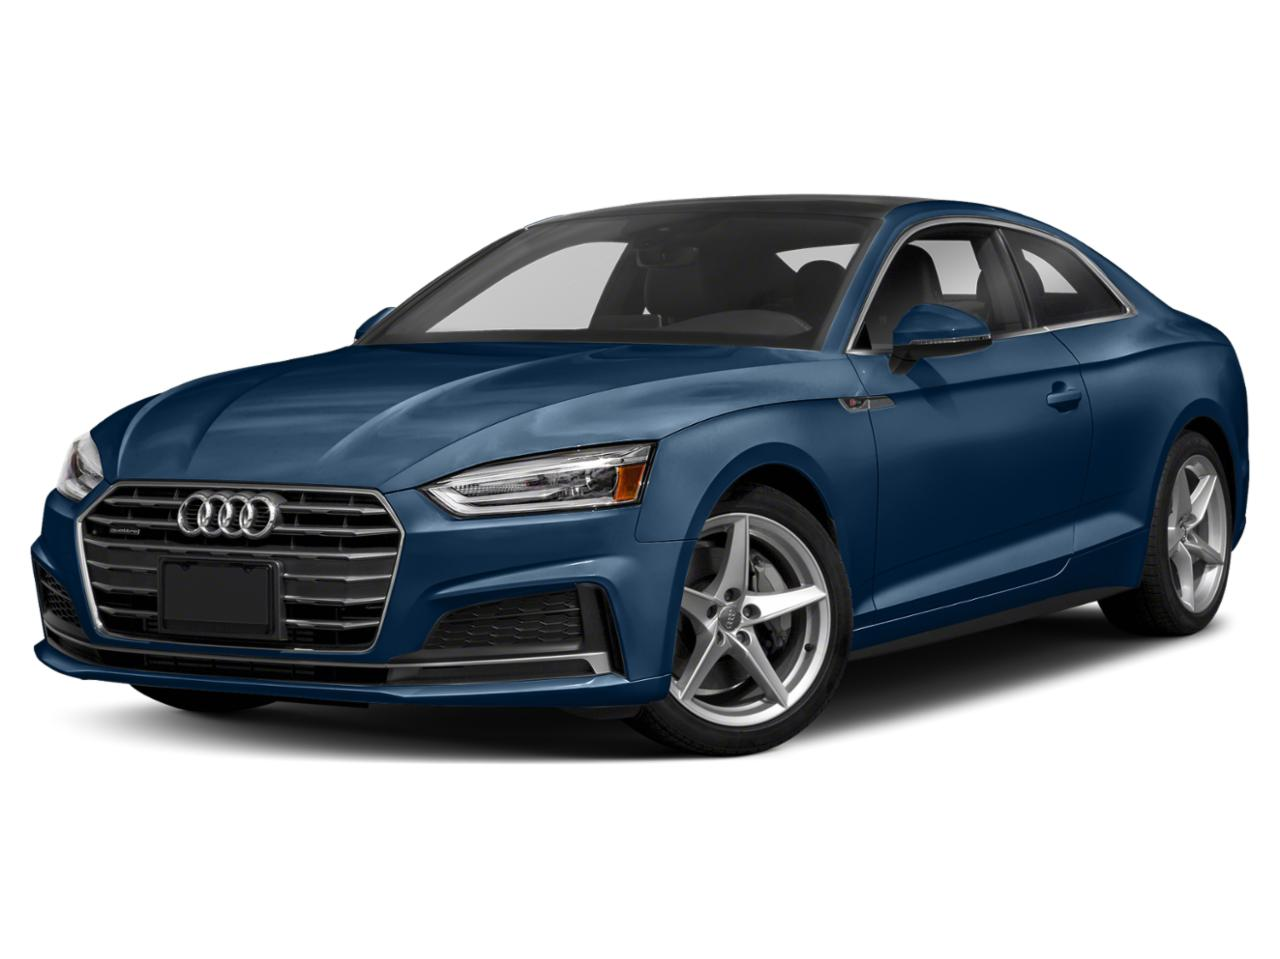 2018 Audi A5 Coupe Vehicle Photo in Allentown, PA 18103